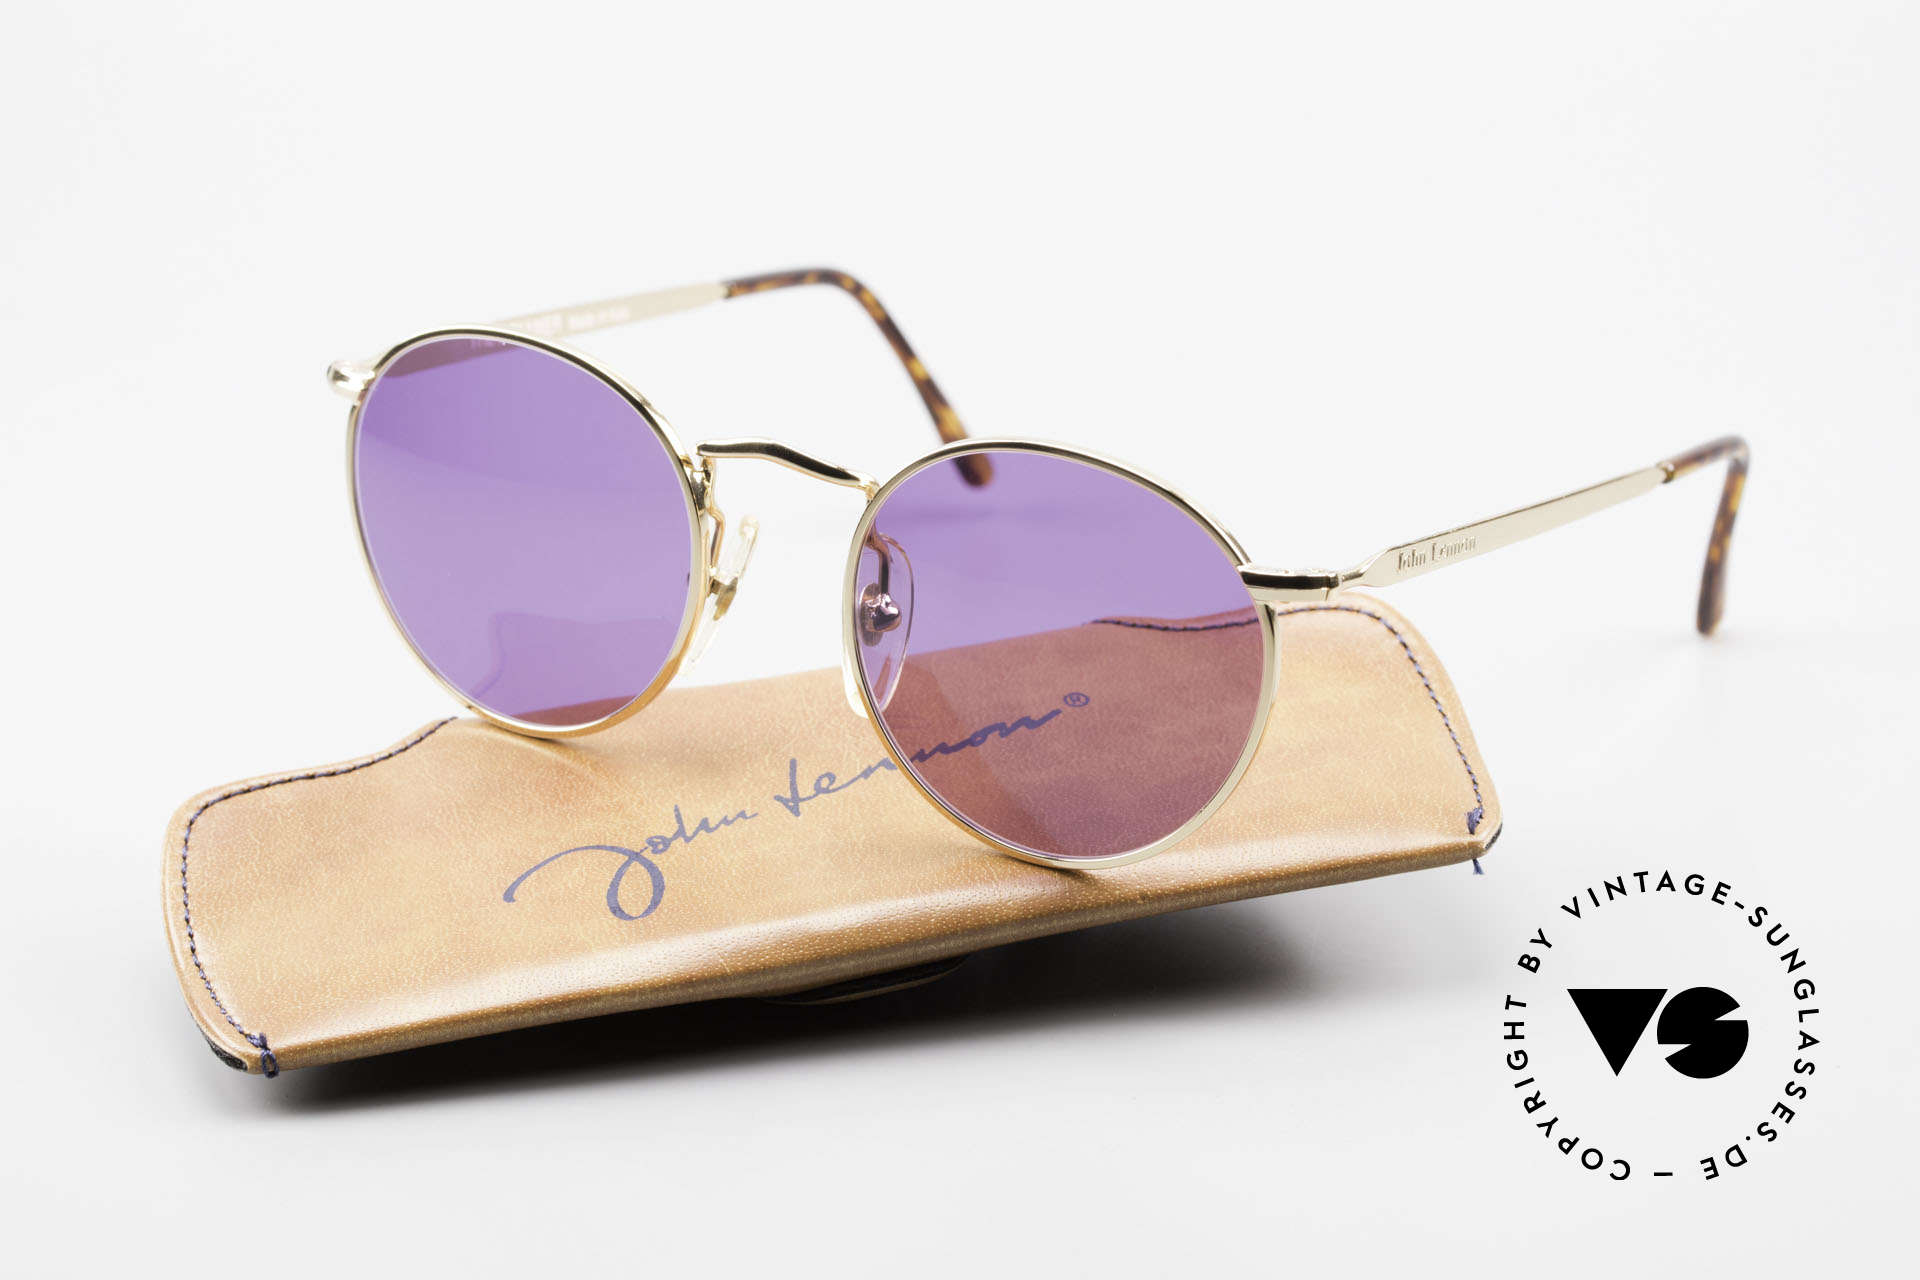 John Lennon - The Dreamer Extra Small Panto Sunglasses, 118mm frame width = EXTRA SMALL fit; 47mm lens size, Made for Men and Women